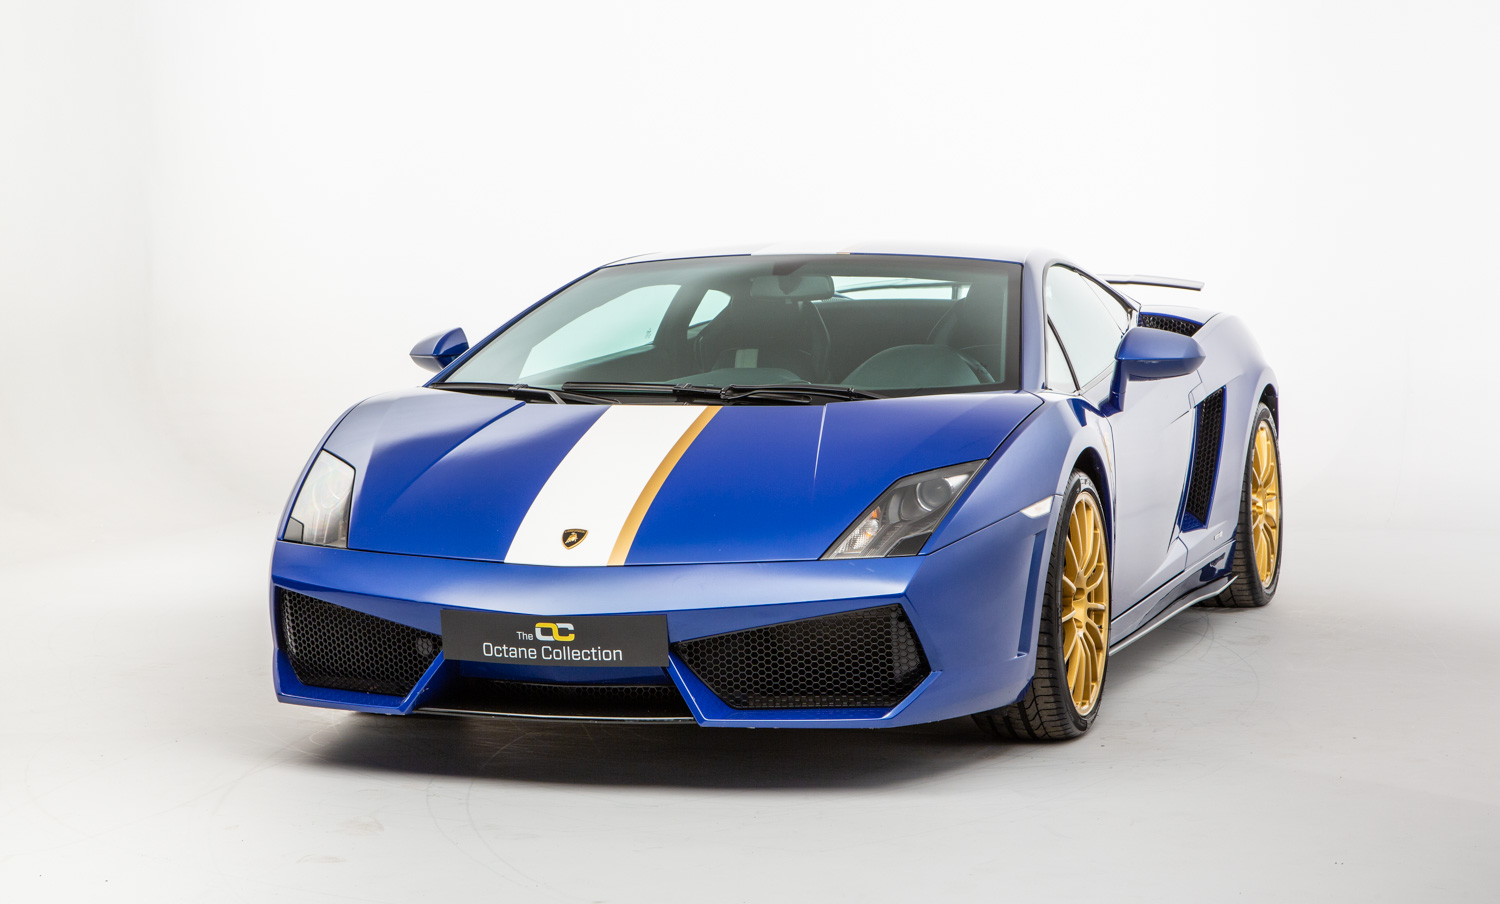 Lamborghini Gallardo Balboni The Octane Collection